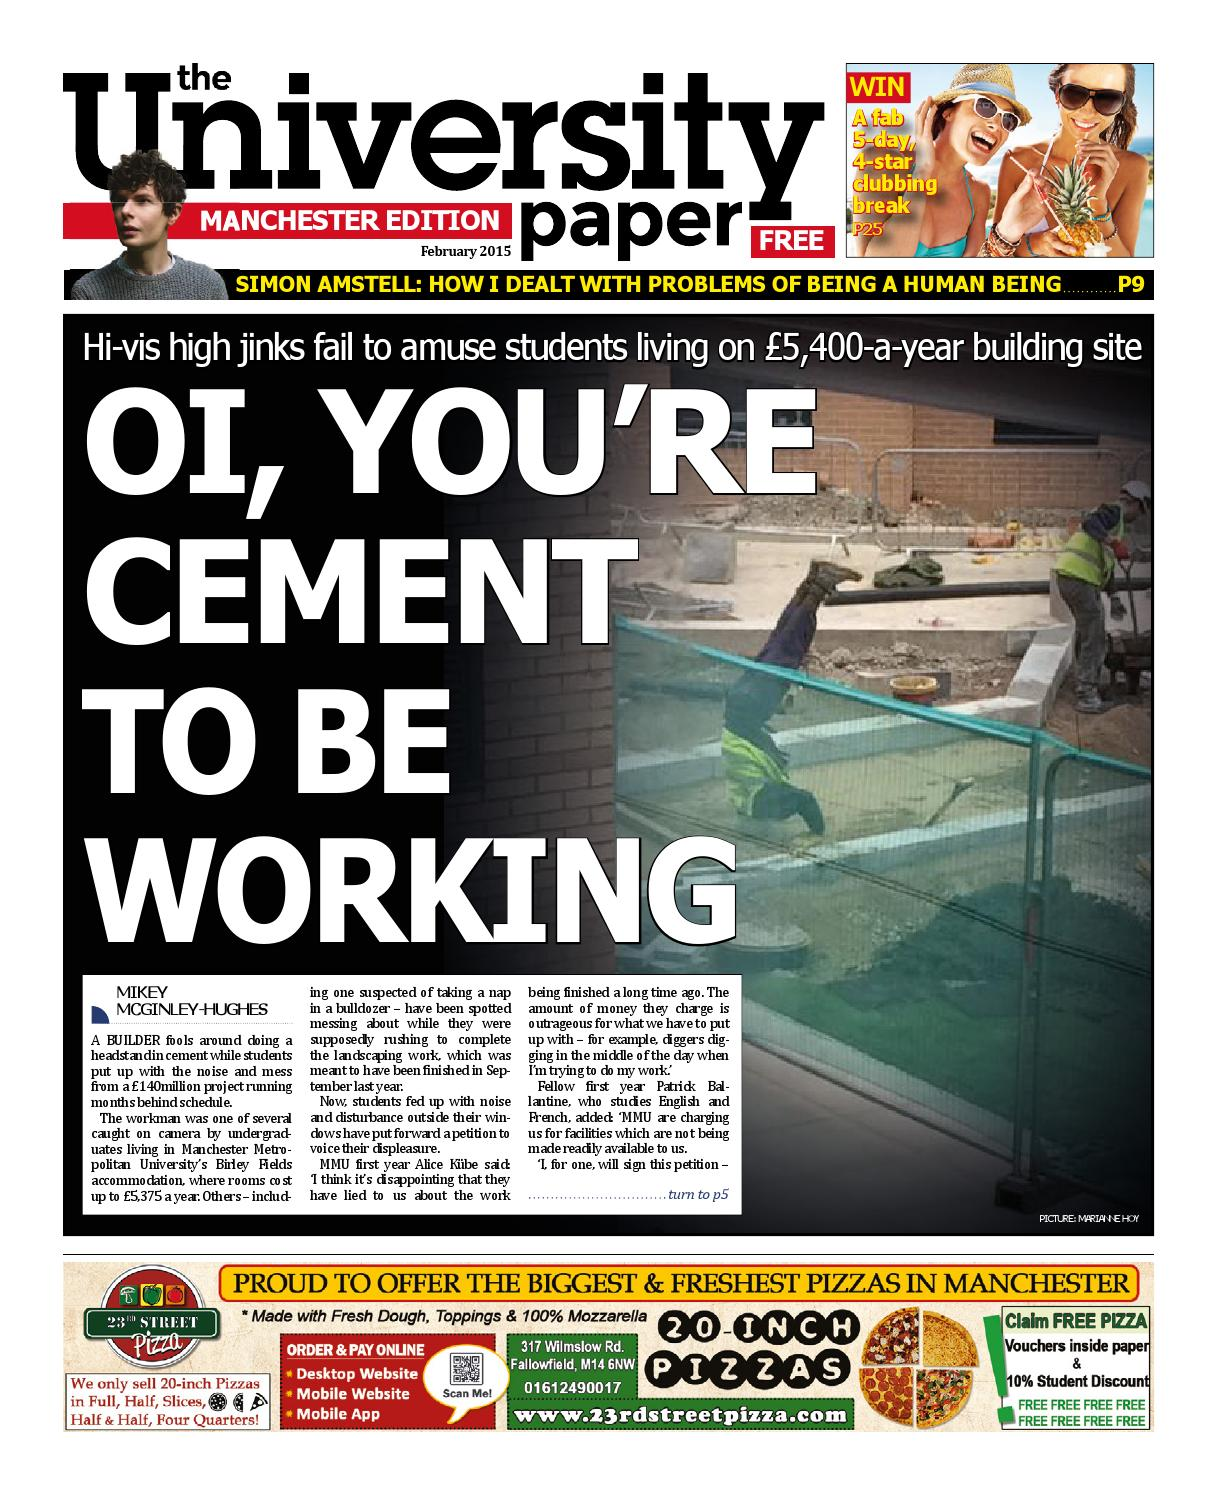 The University Paper February 2015: Manchester by The